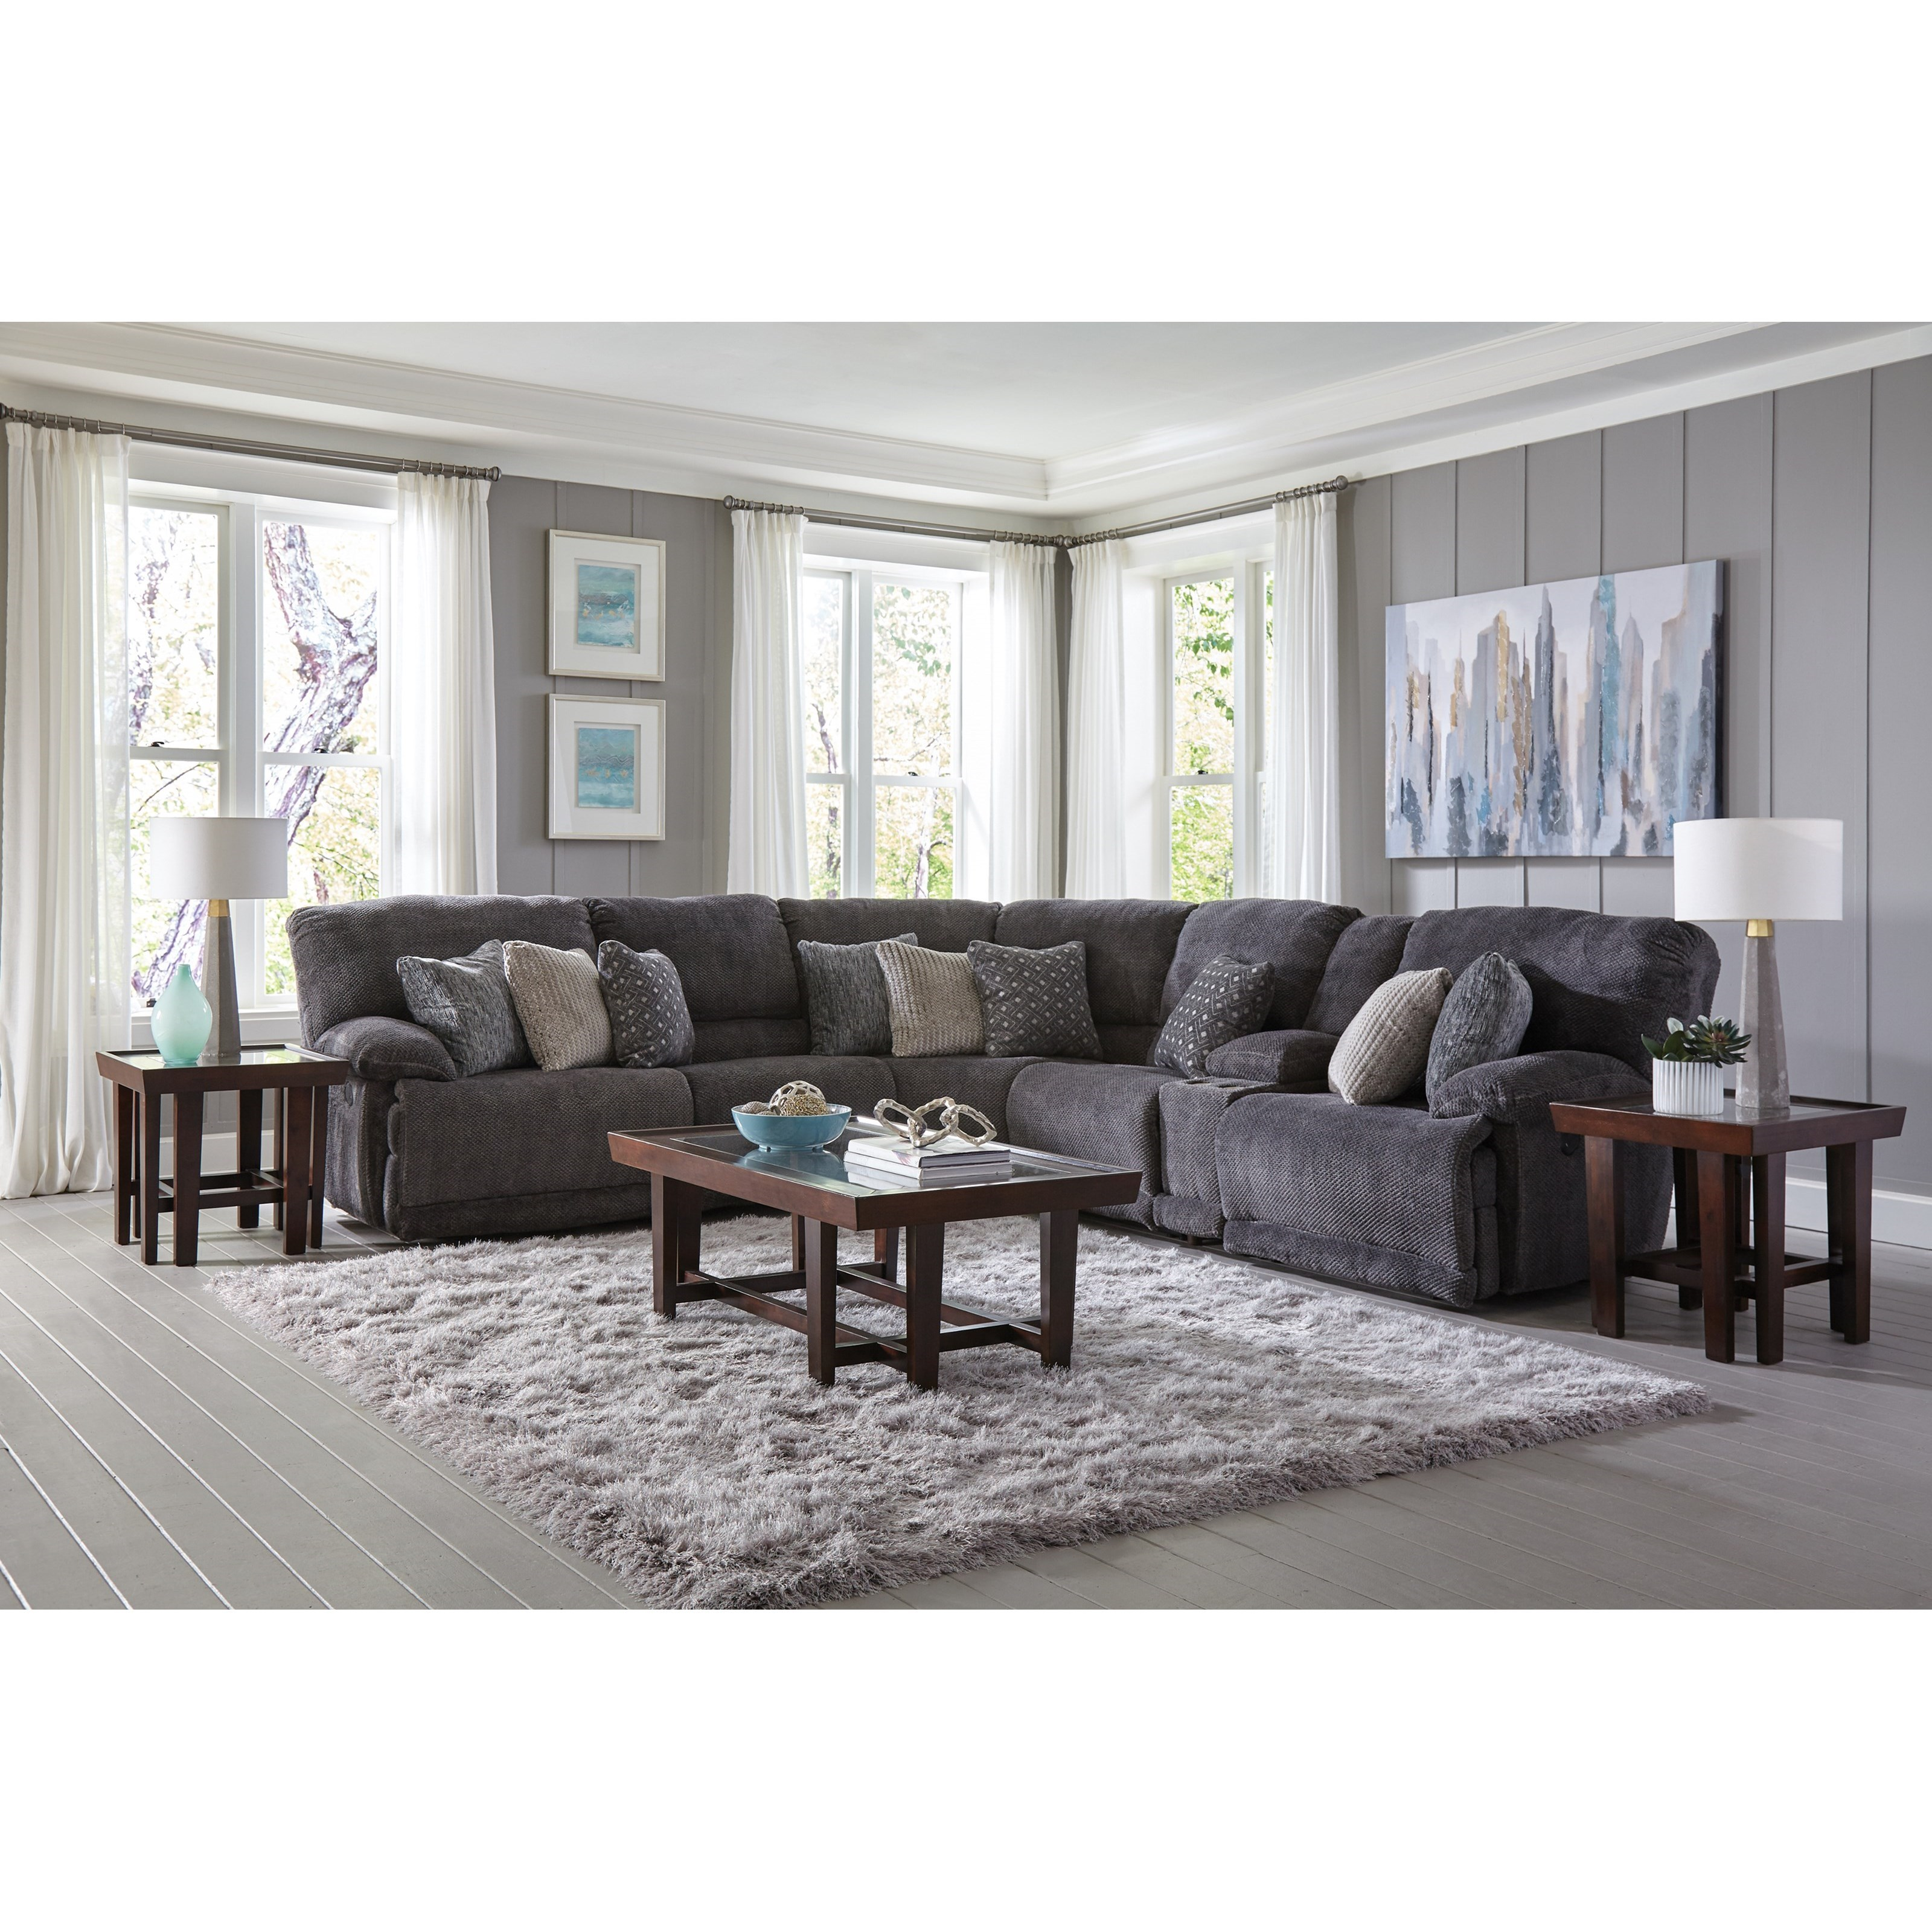 Ashley Furniture In Burbank: Catnapper Burbank Power Reclining Sectional With Cup